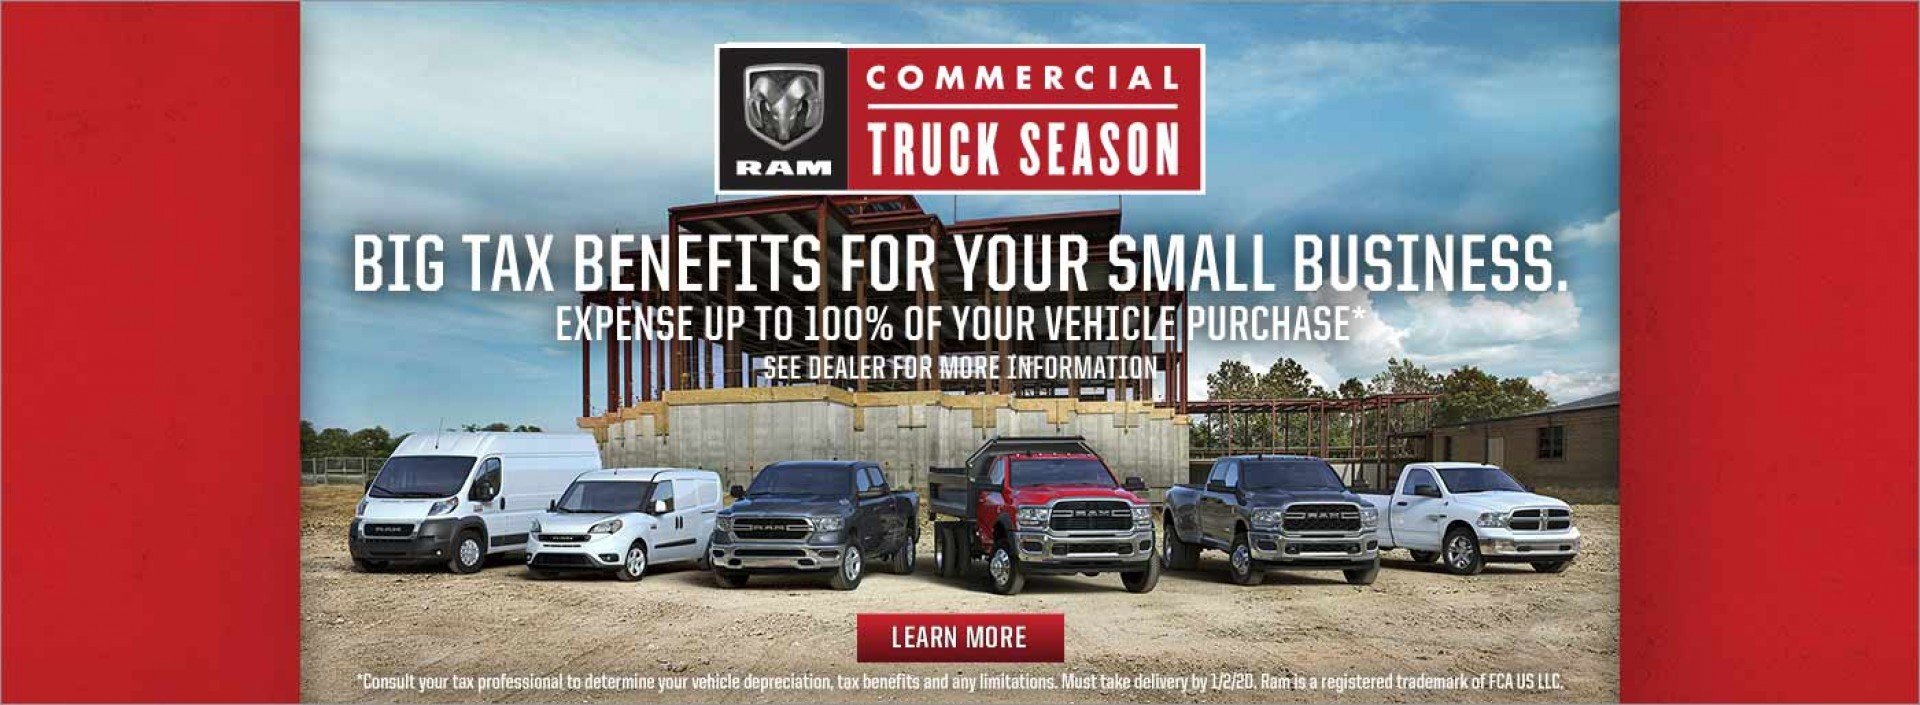 Commercial Truck Season - Big Tax Benefits For Your Small Business. Expense up to 100% of your vehicle purchase. See dealer for more information